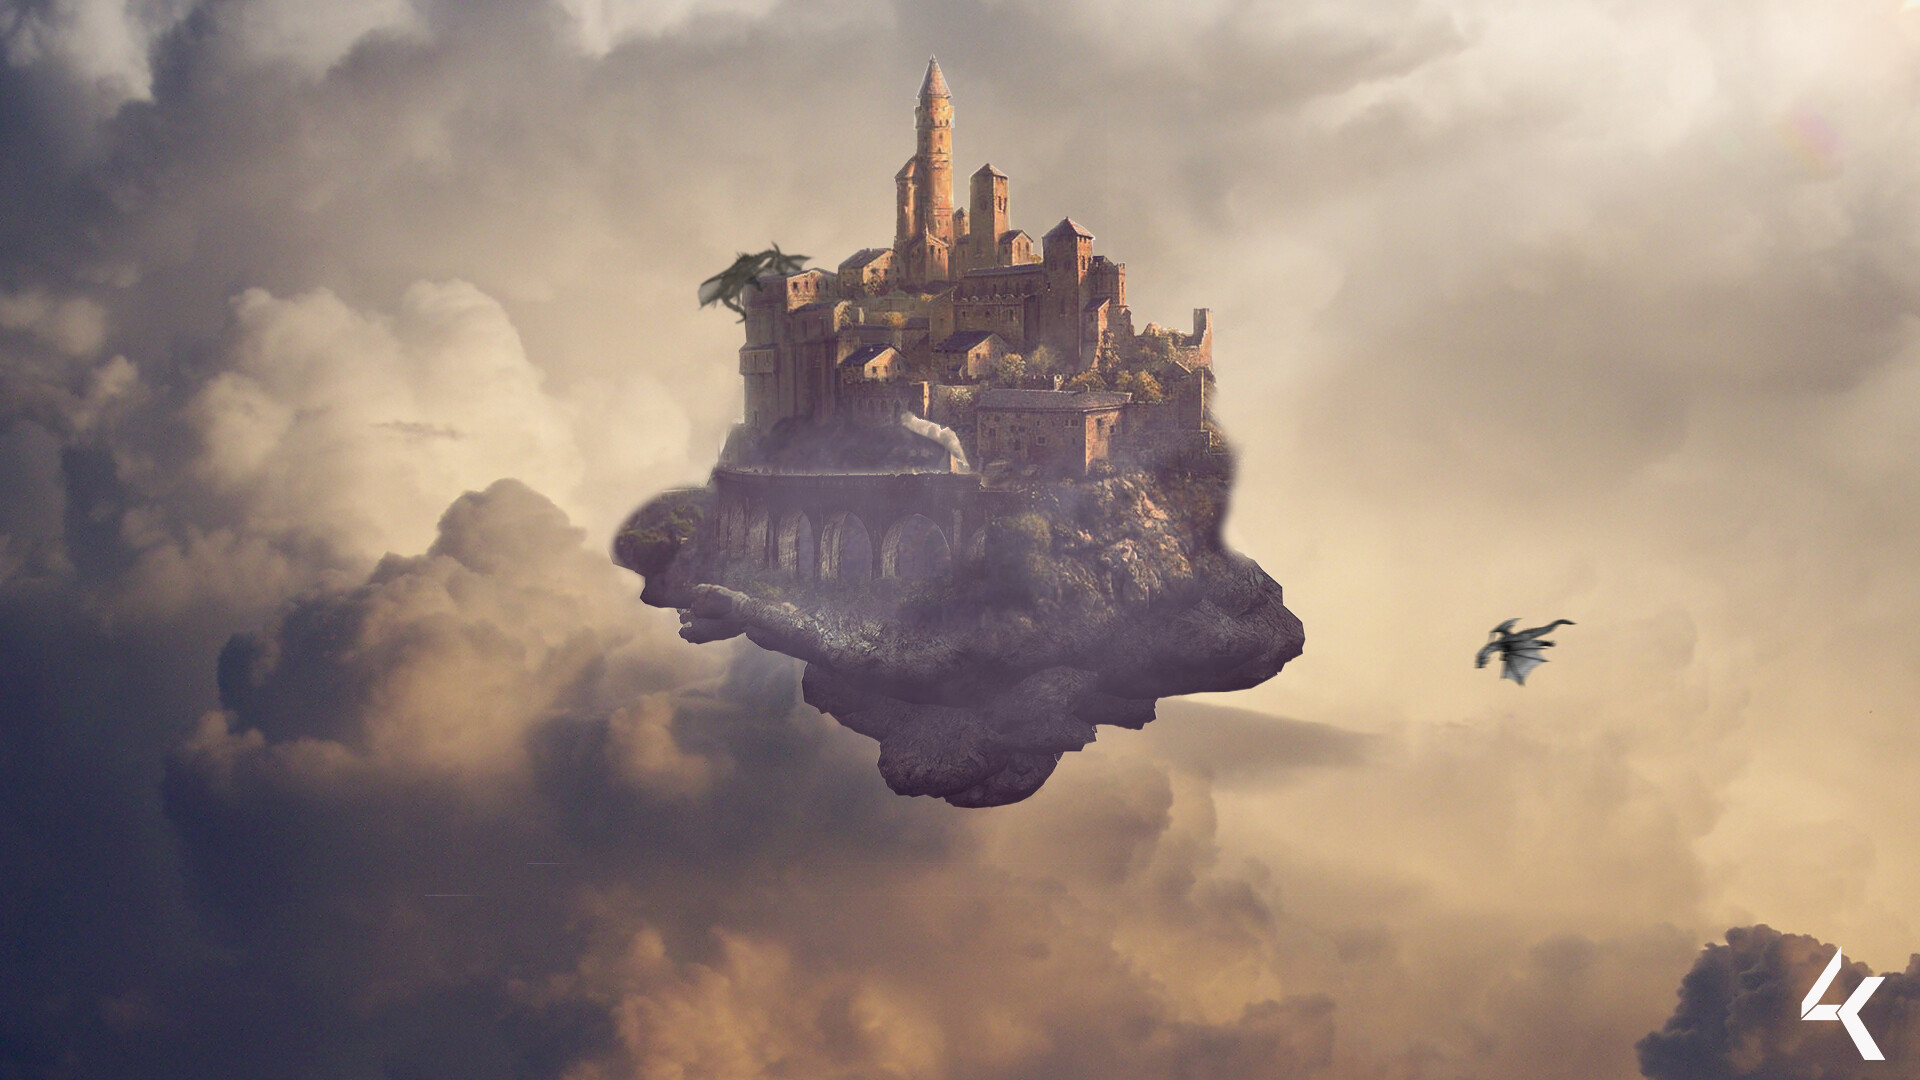 Lukas cooper groh castle in the sky